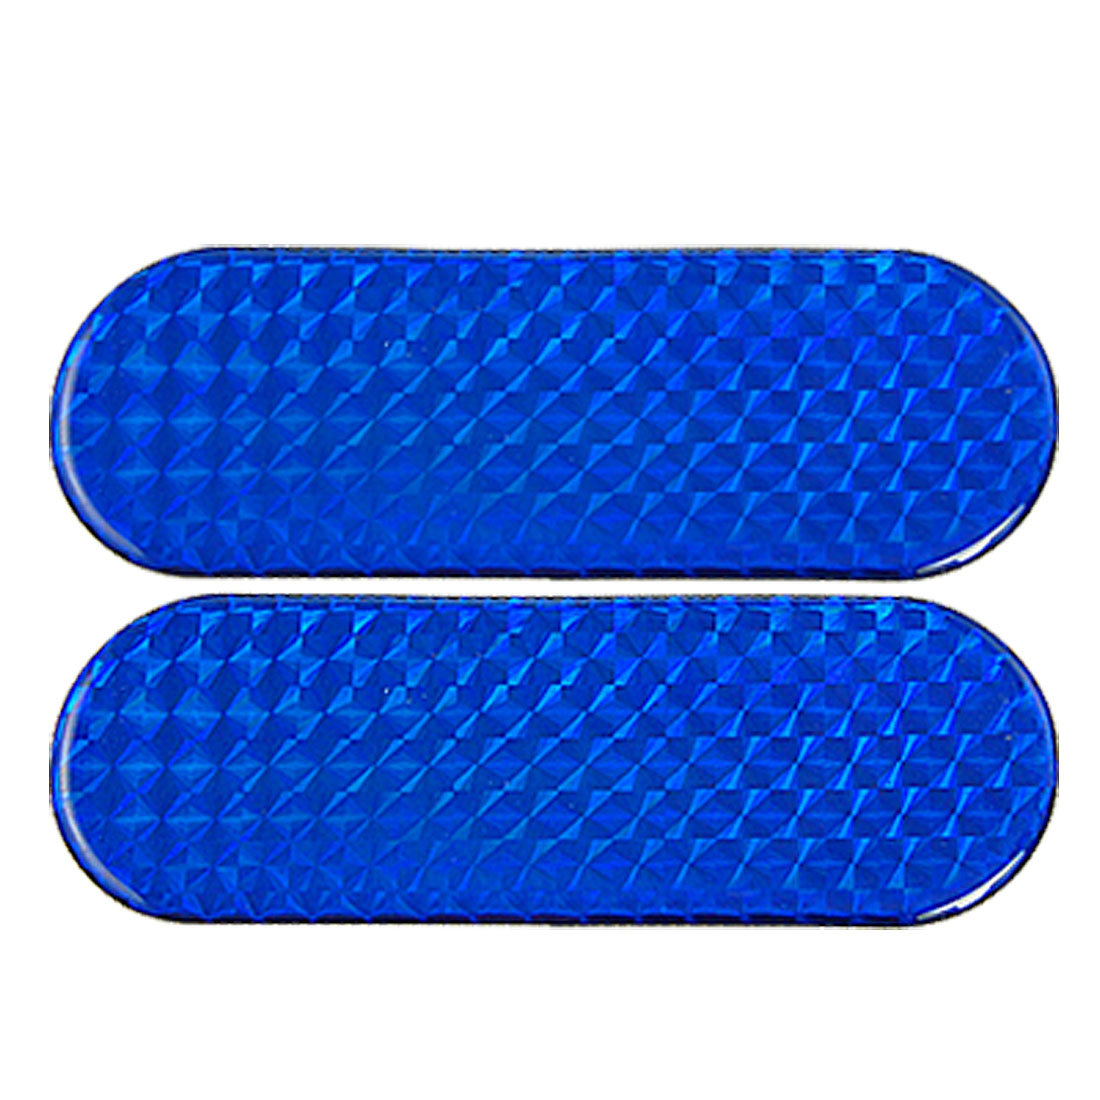 Universal Blue Bar Reflective Stickers Decal 2 Pcs for Vehicles